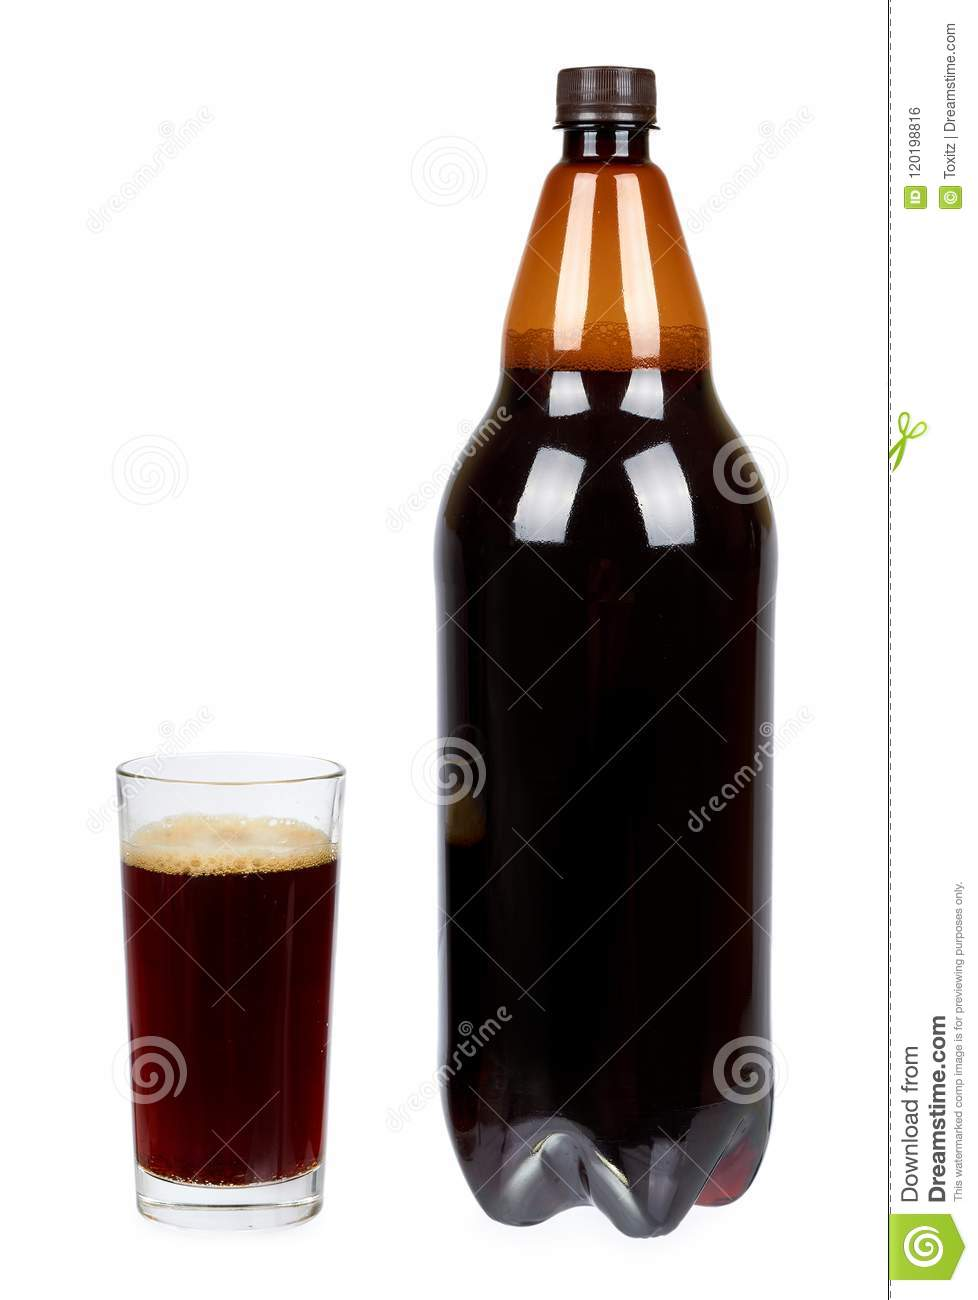 Dark brown plastic bottle of beer or kvass with glass cup isolated on a white background.